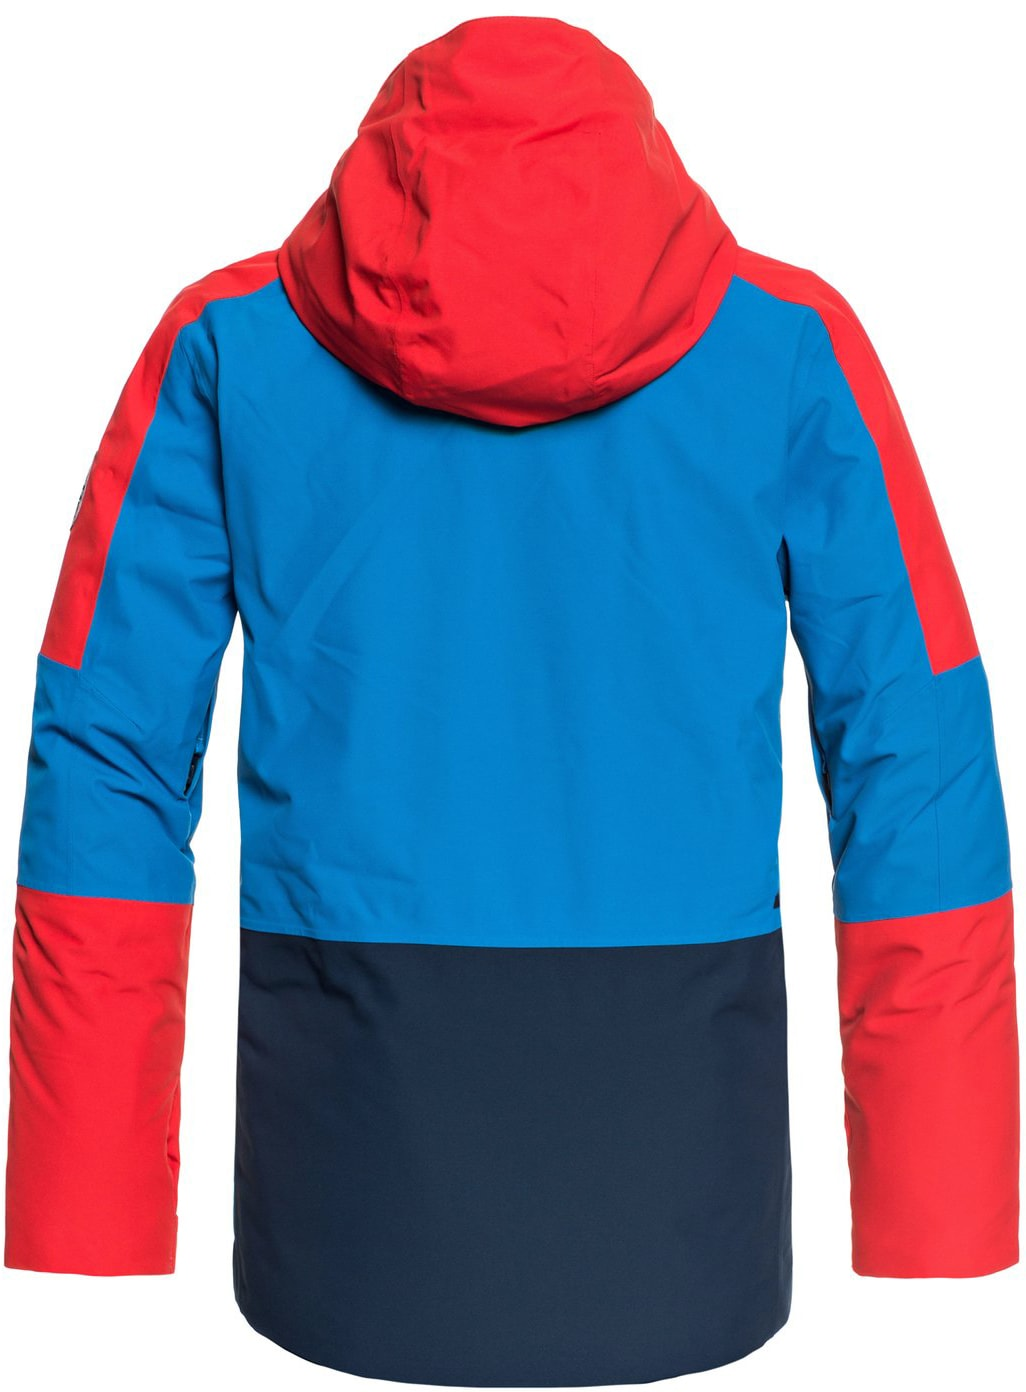 9f43e93d4 Quiksilver Sycamore Snowboard Jacket - Kids 2019